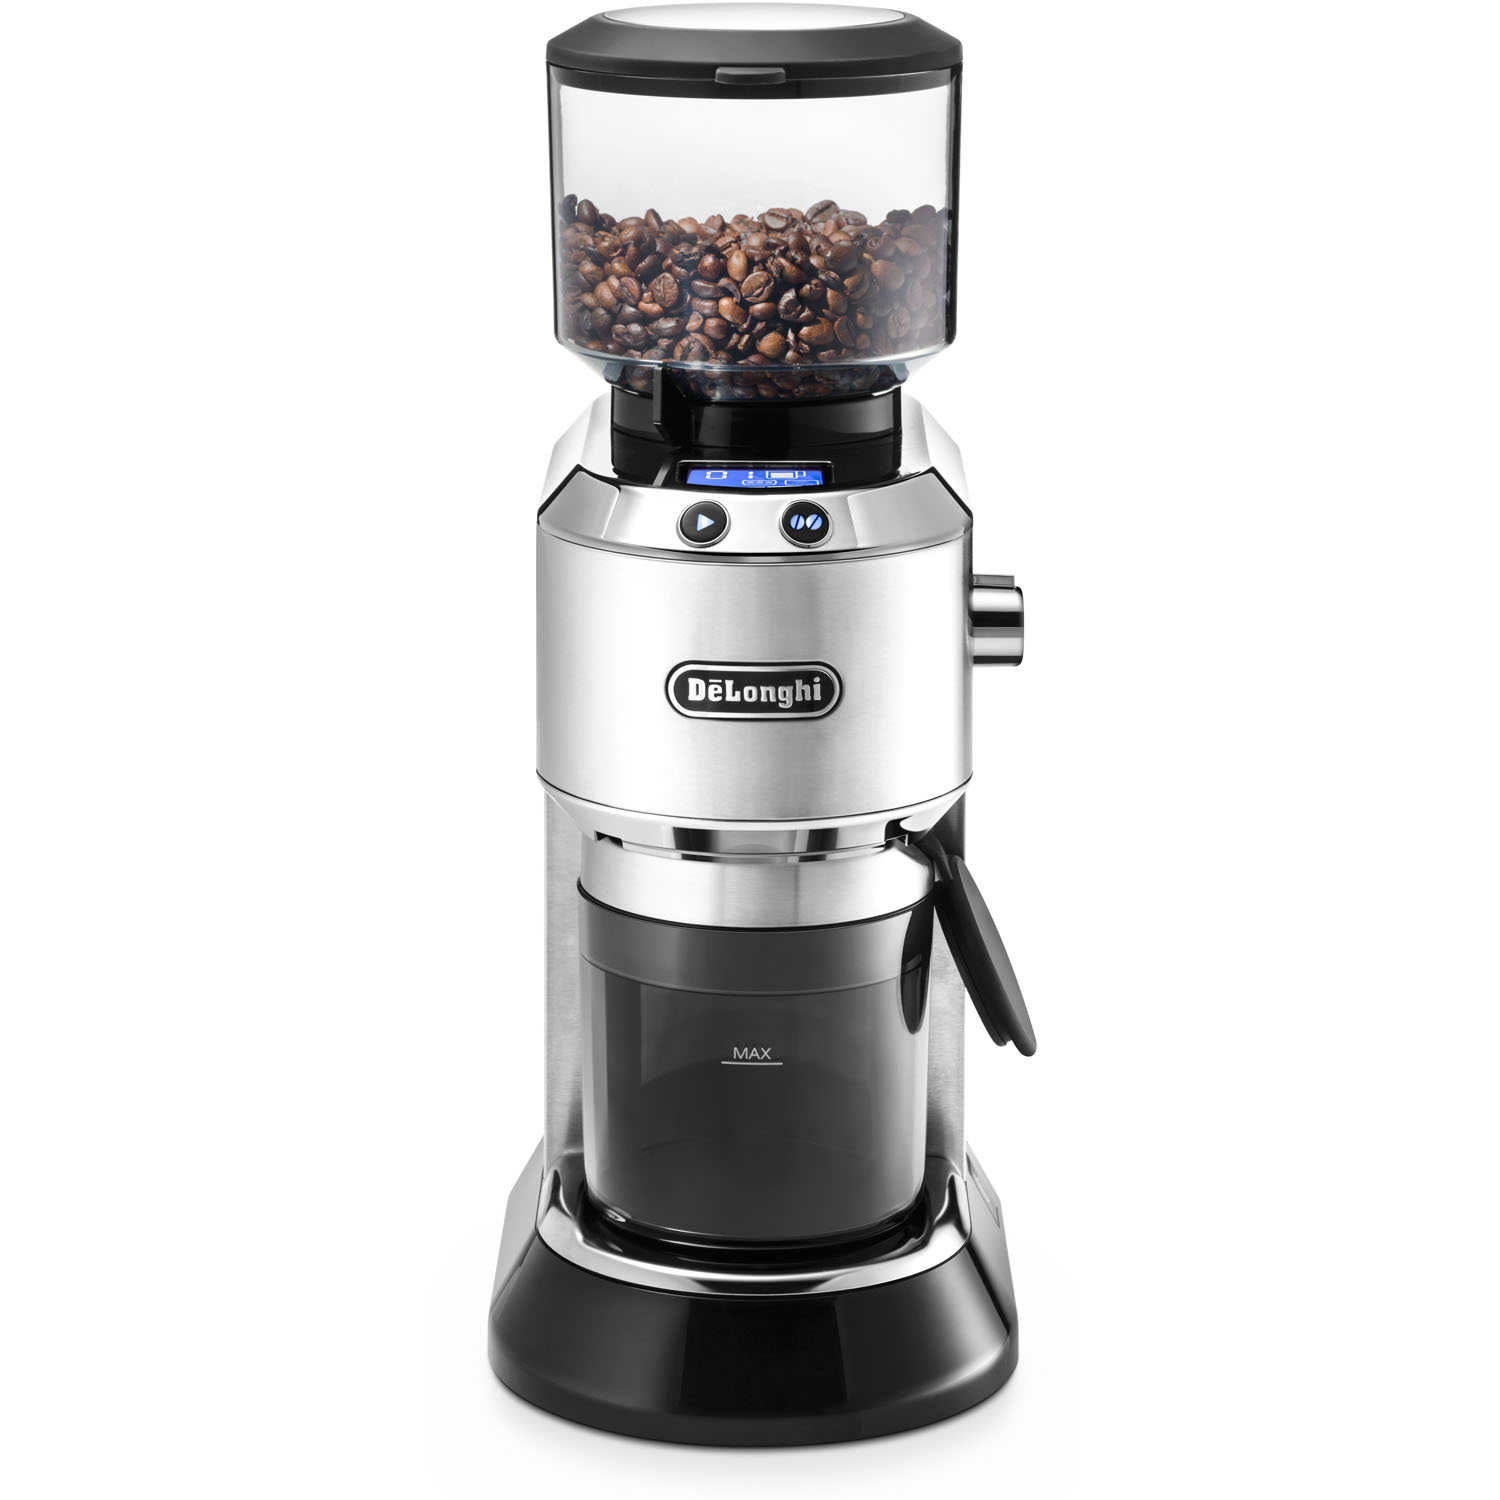 DeLonghi Dedica Conical Burr Grinder with 14-Cup Grinding Capability